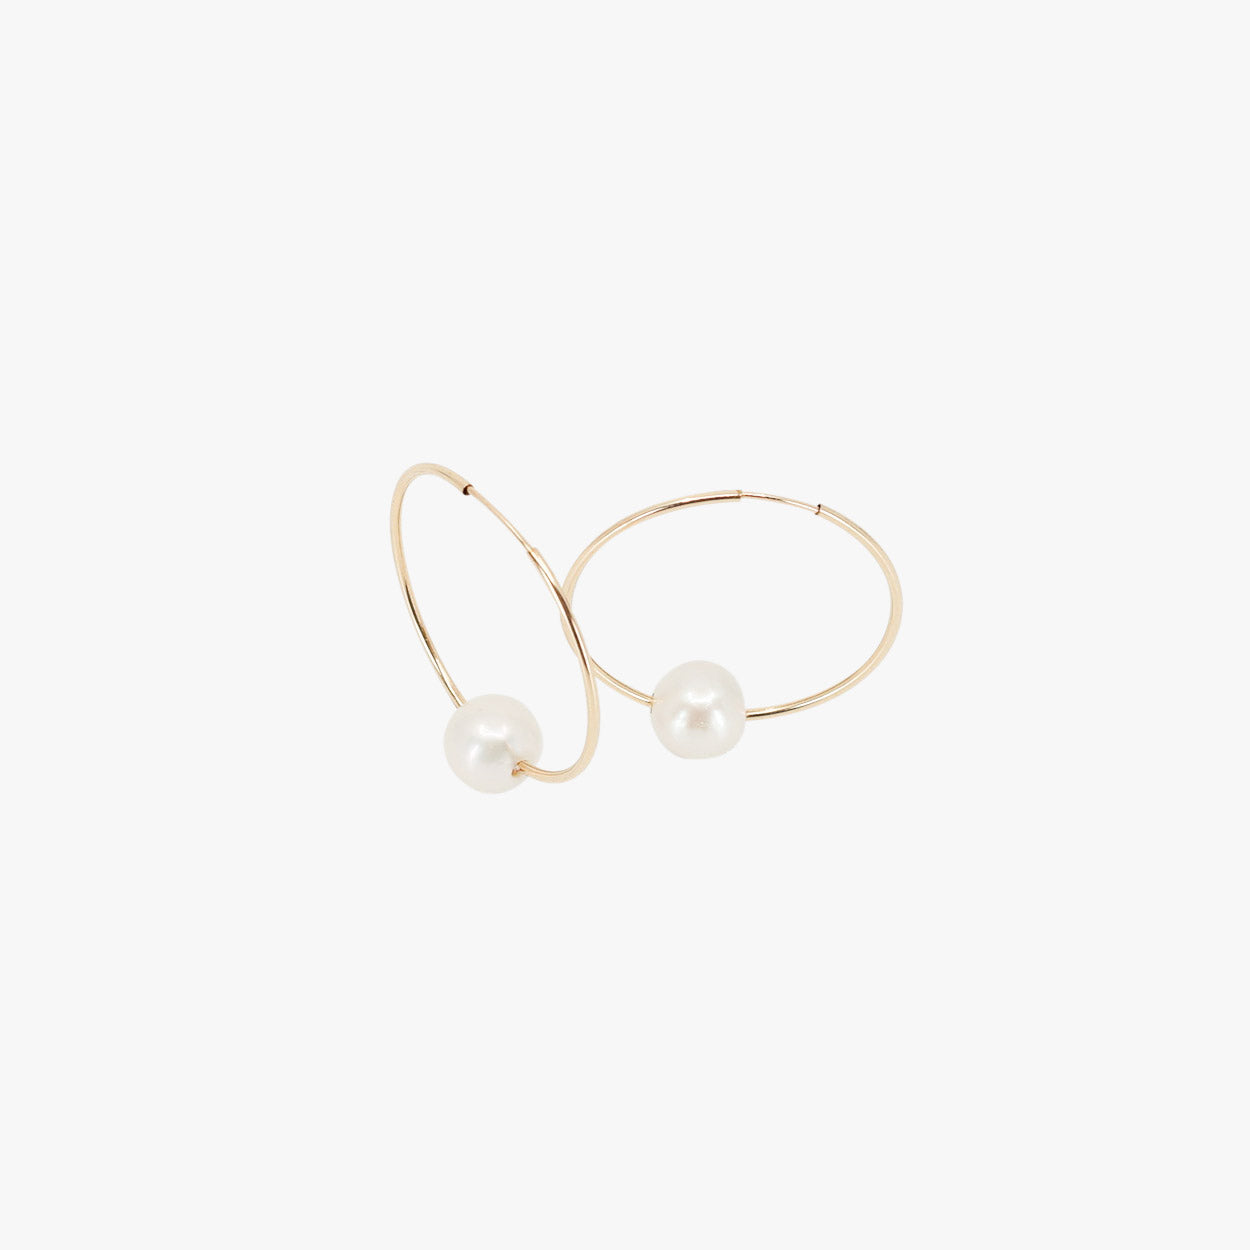 Small Gold hoops with white Pearl